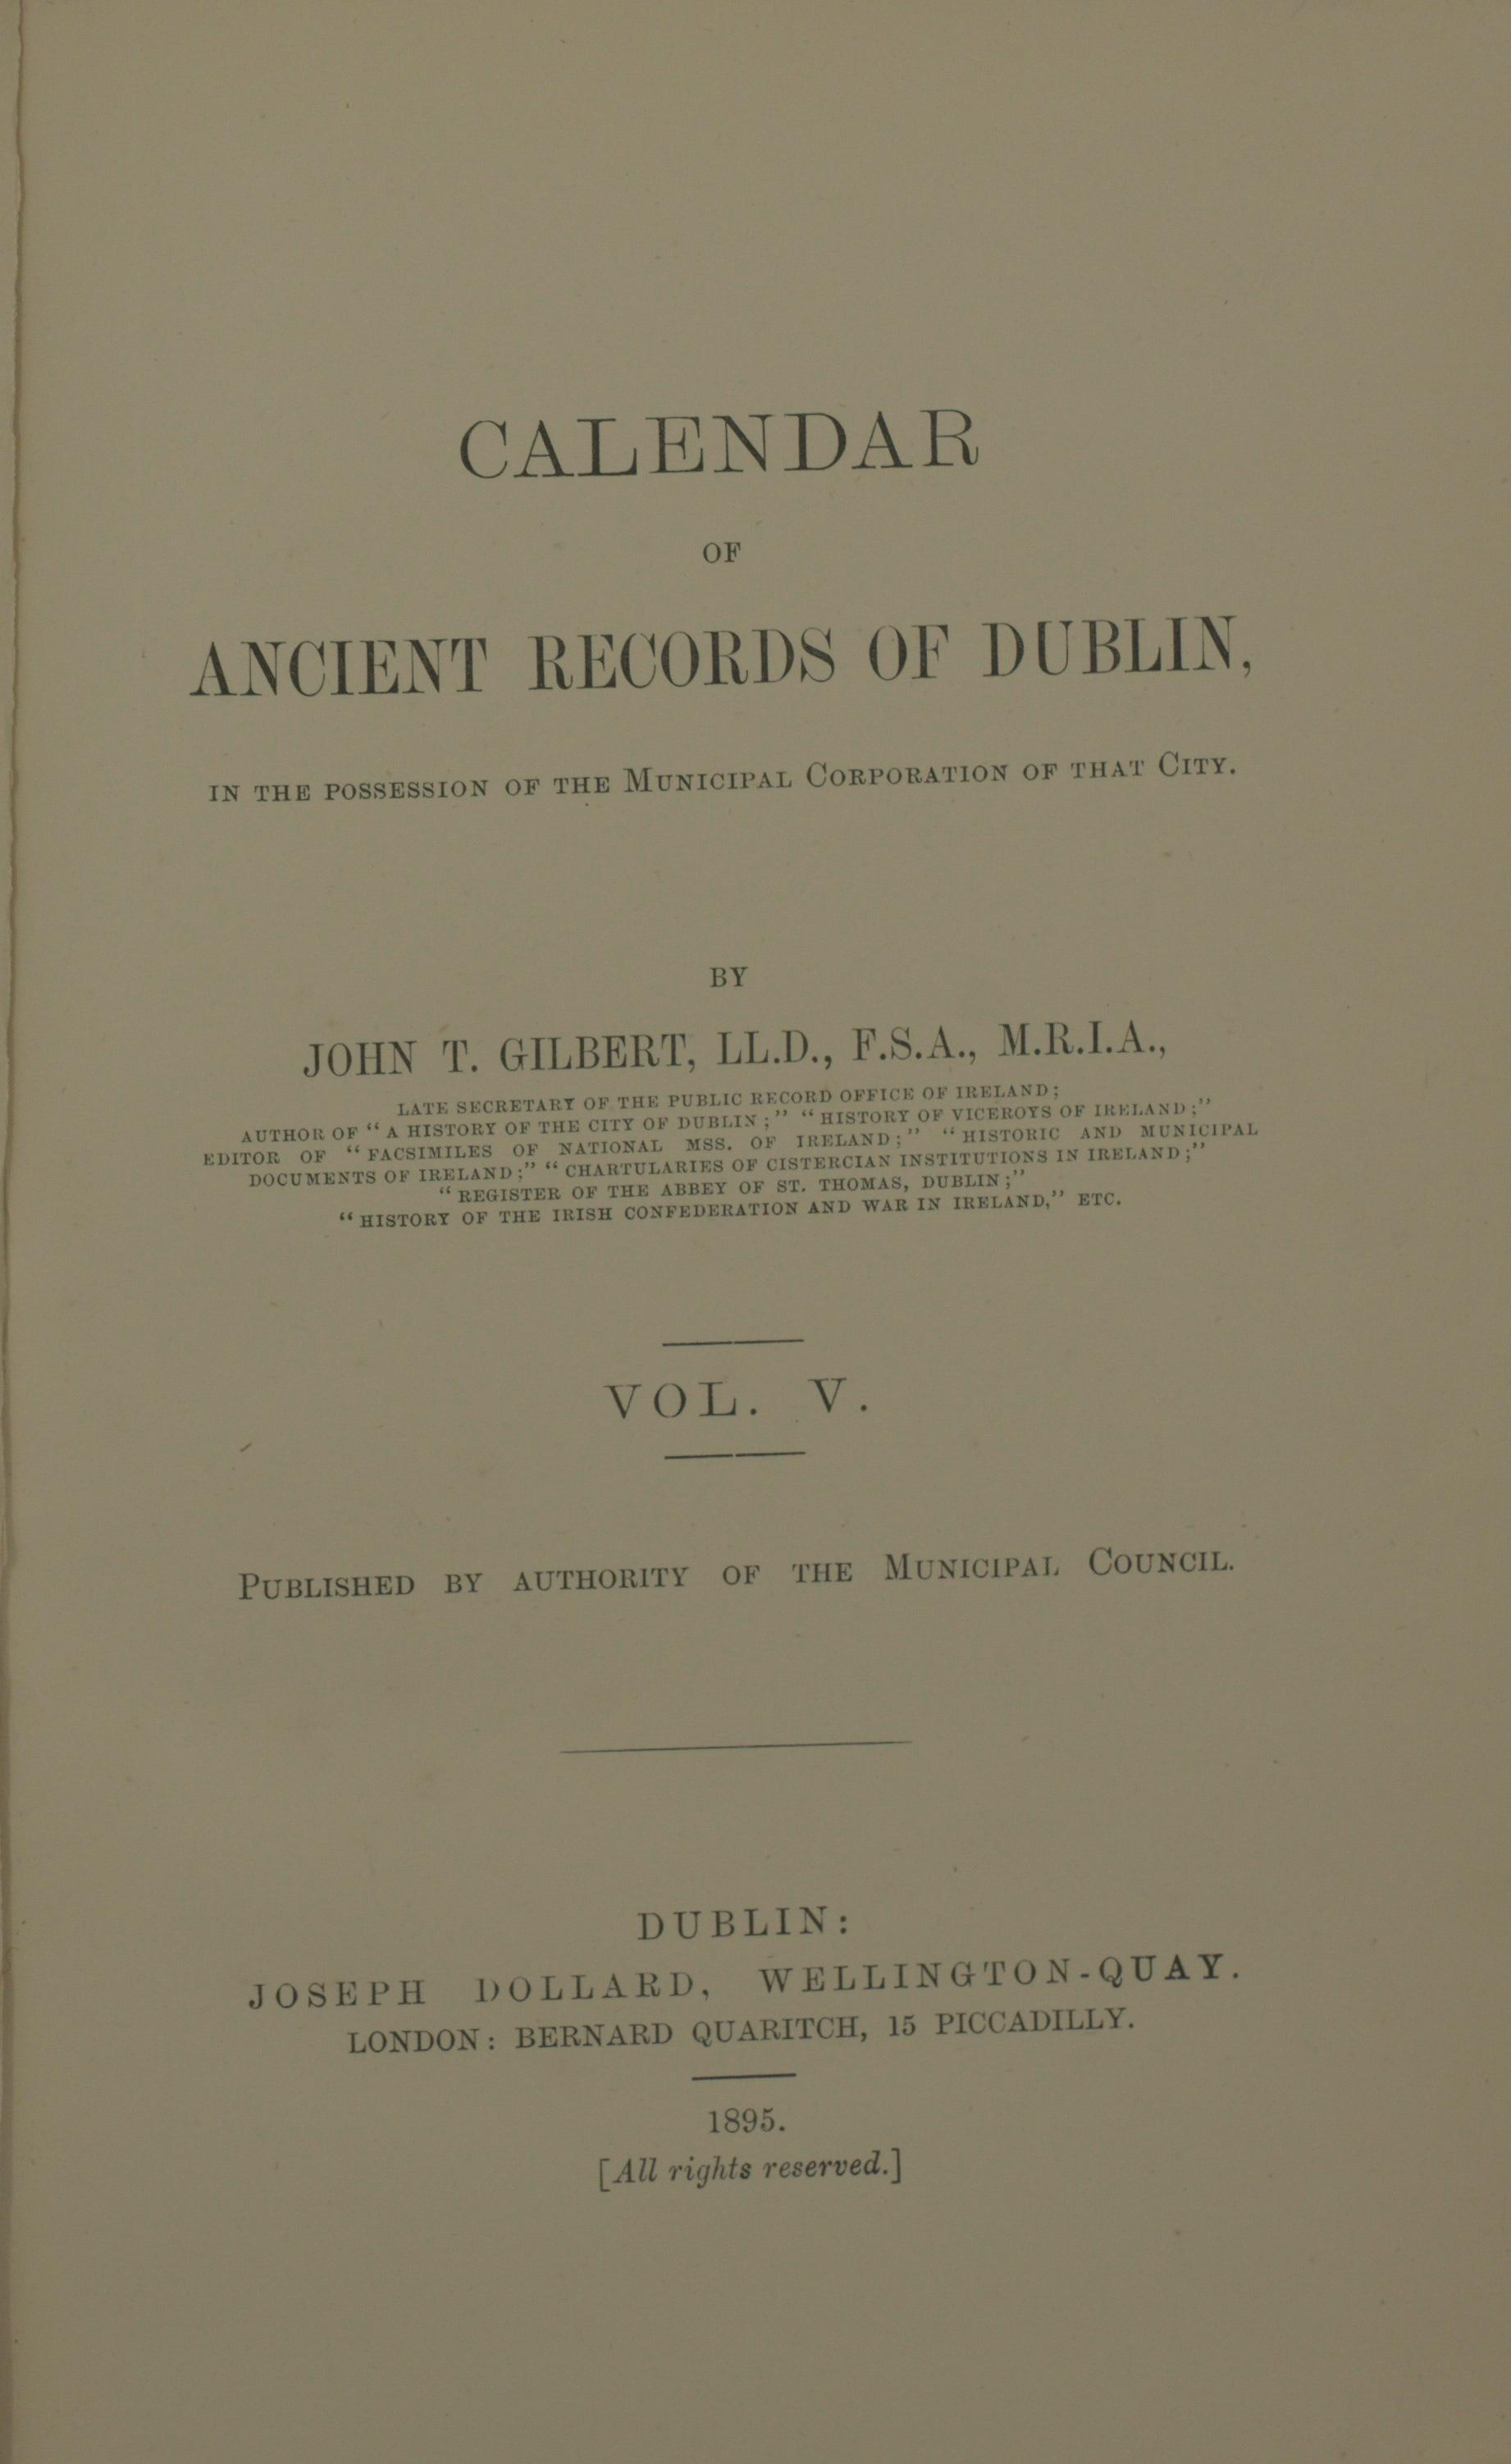 photo of The Calendar of Ancient Records of Dublin Vol V. 1895